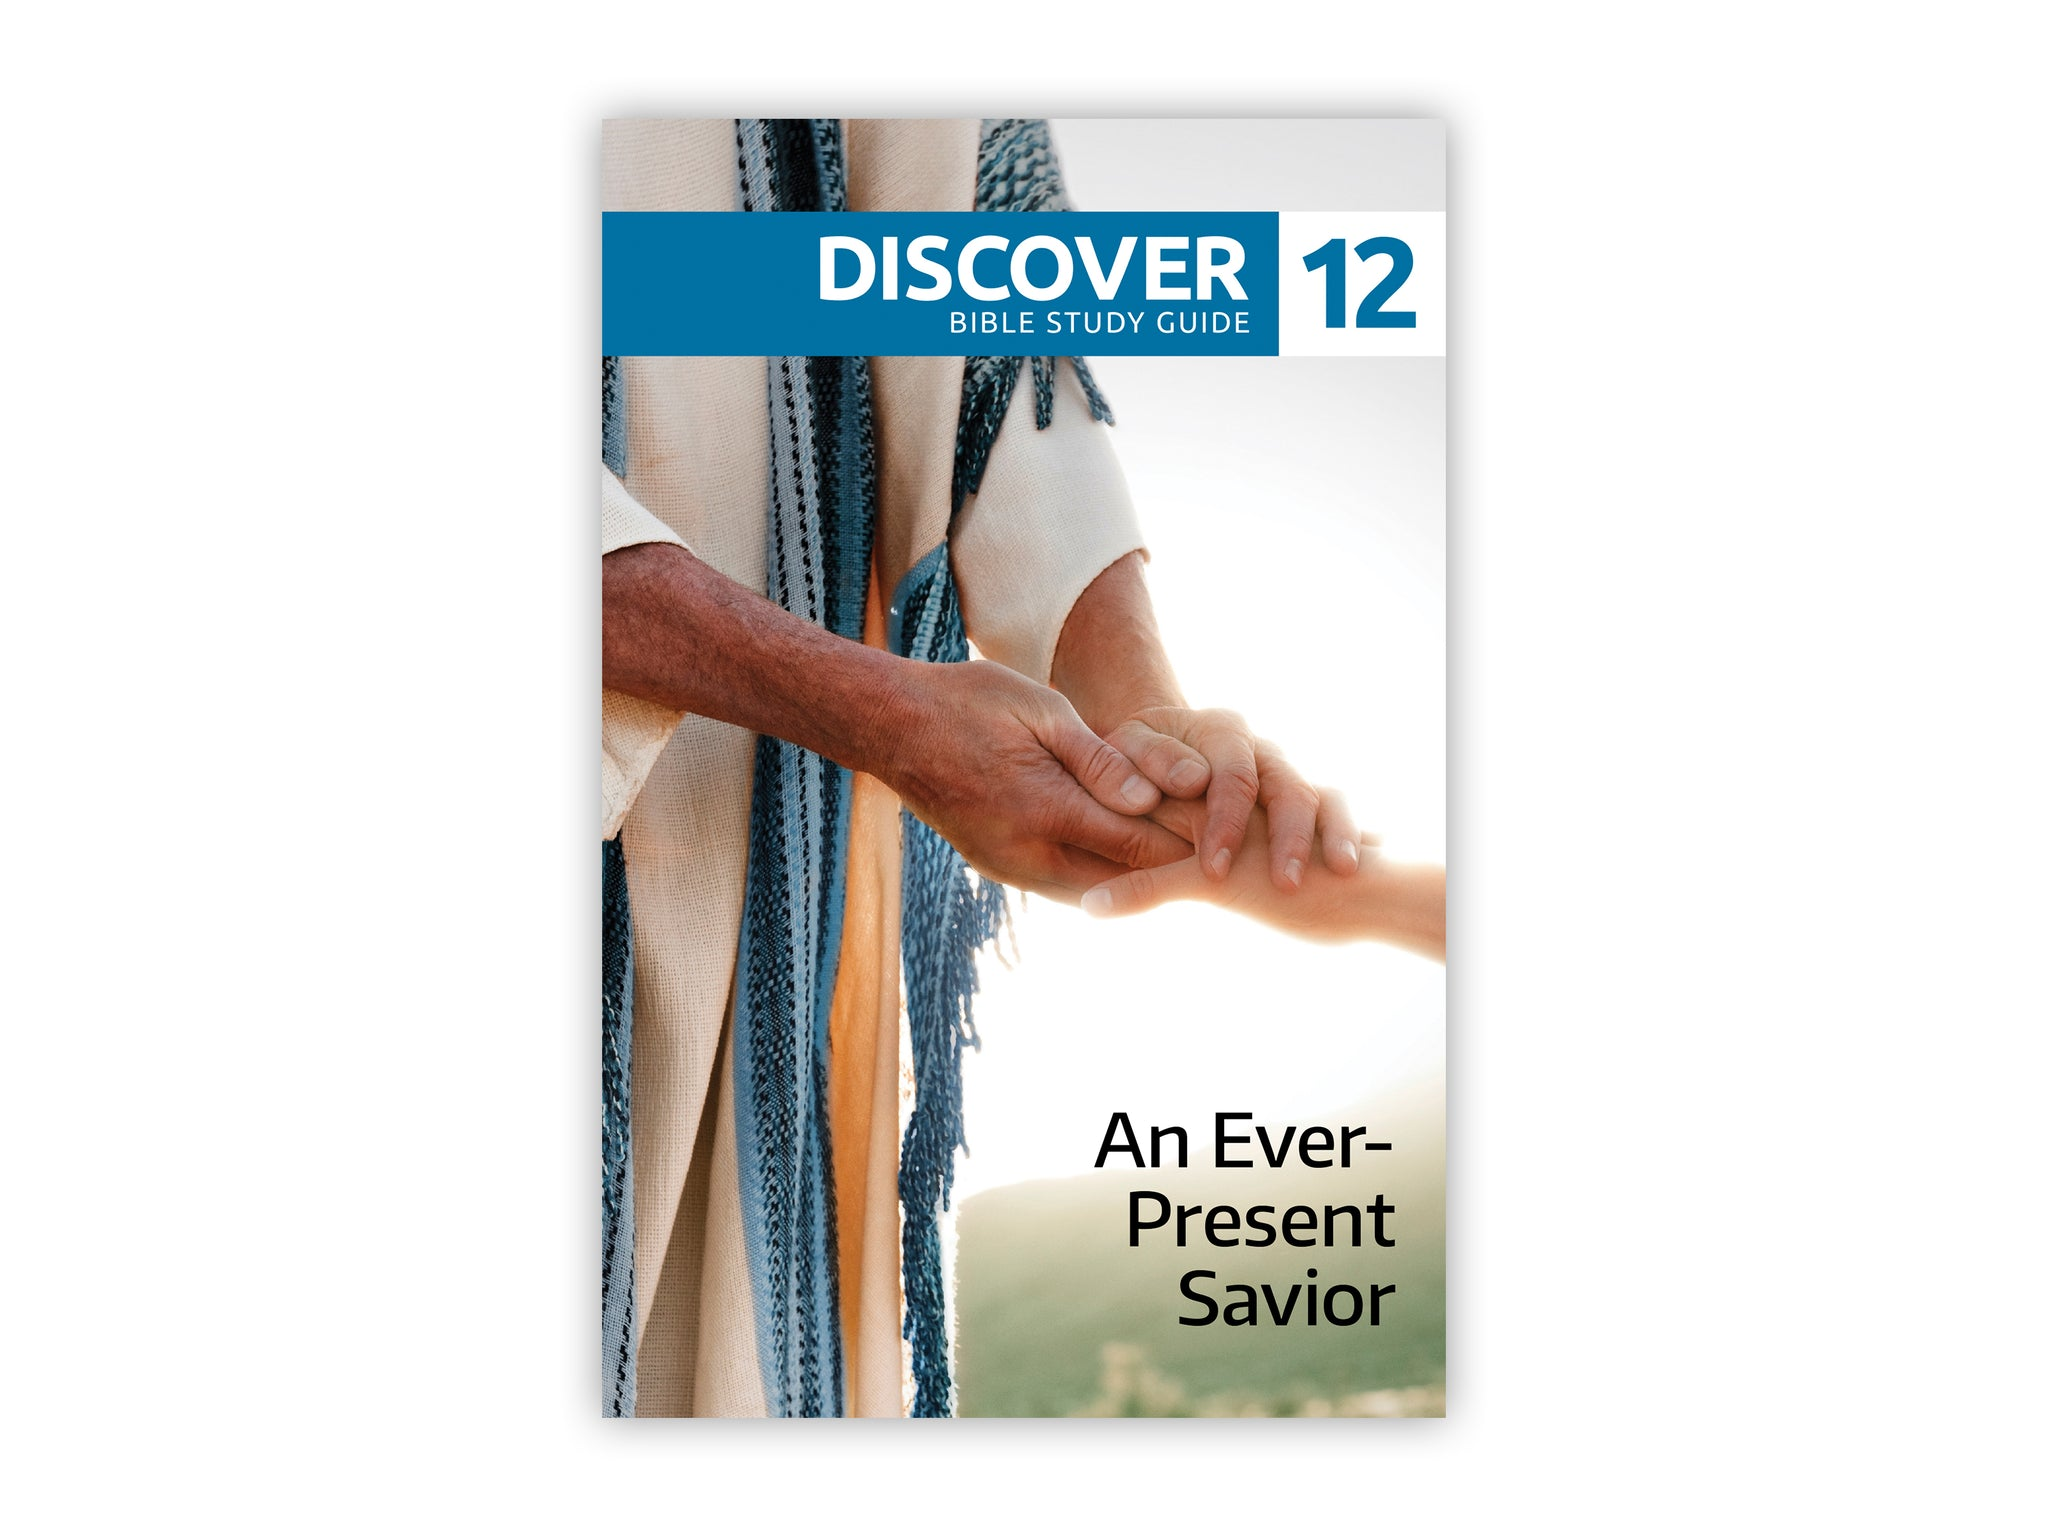 Discover Bible Study Guide #12 - An Ever-Present Savior